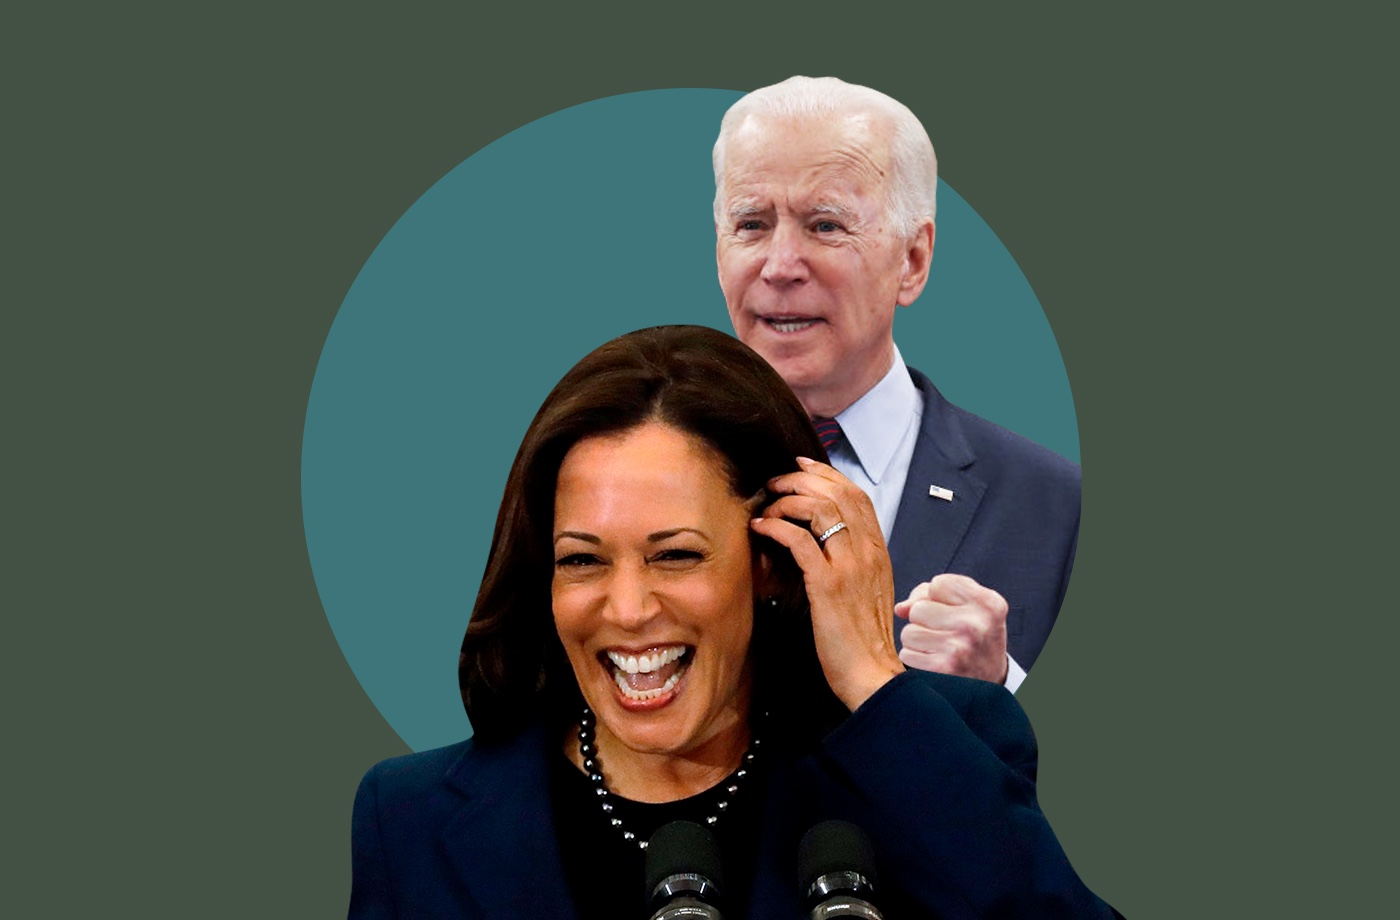 Where Joe Biden & Kamala Harris Stand on Important Health & Well-Beings Issues